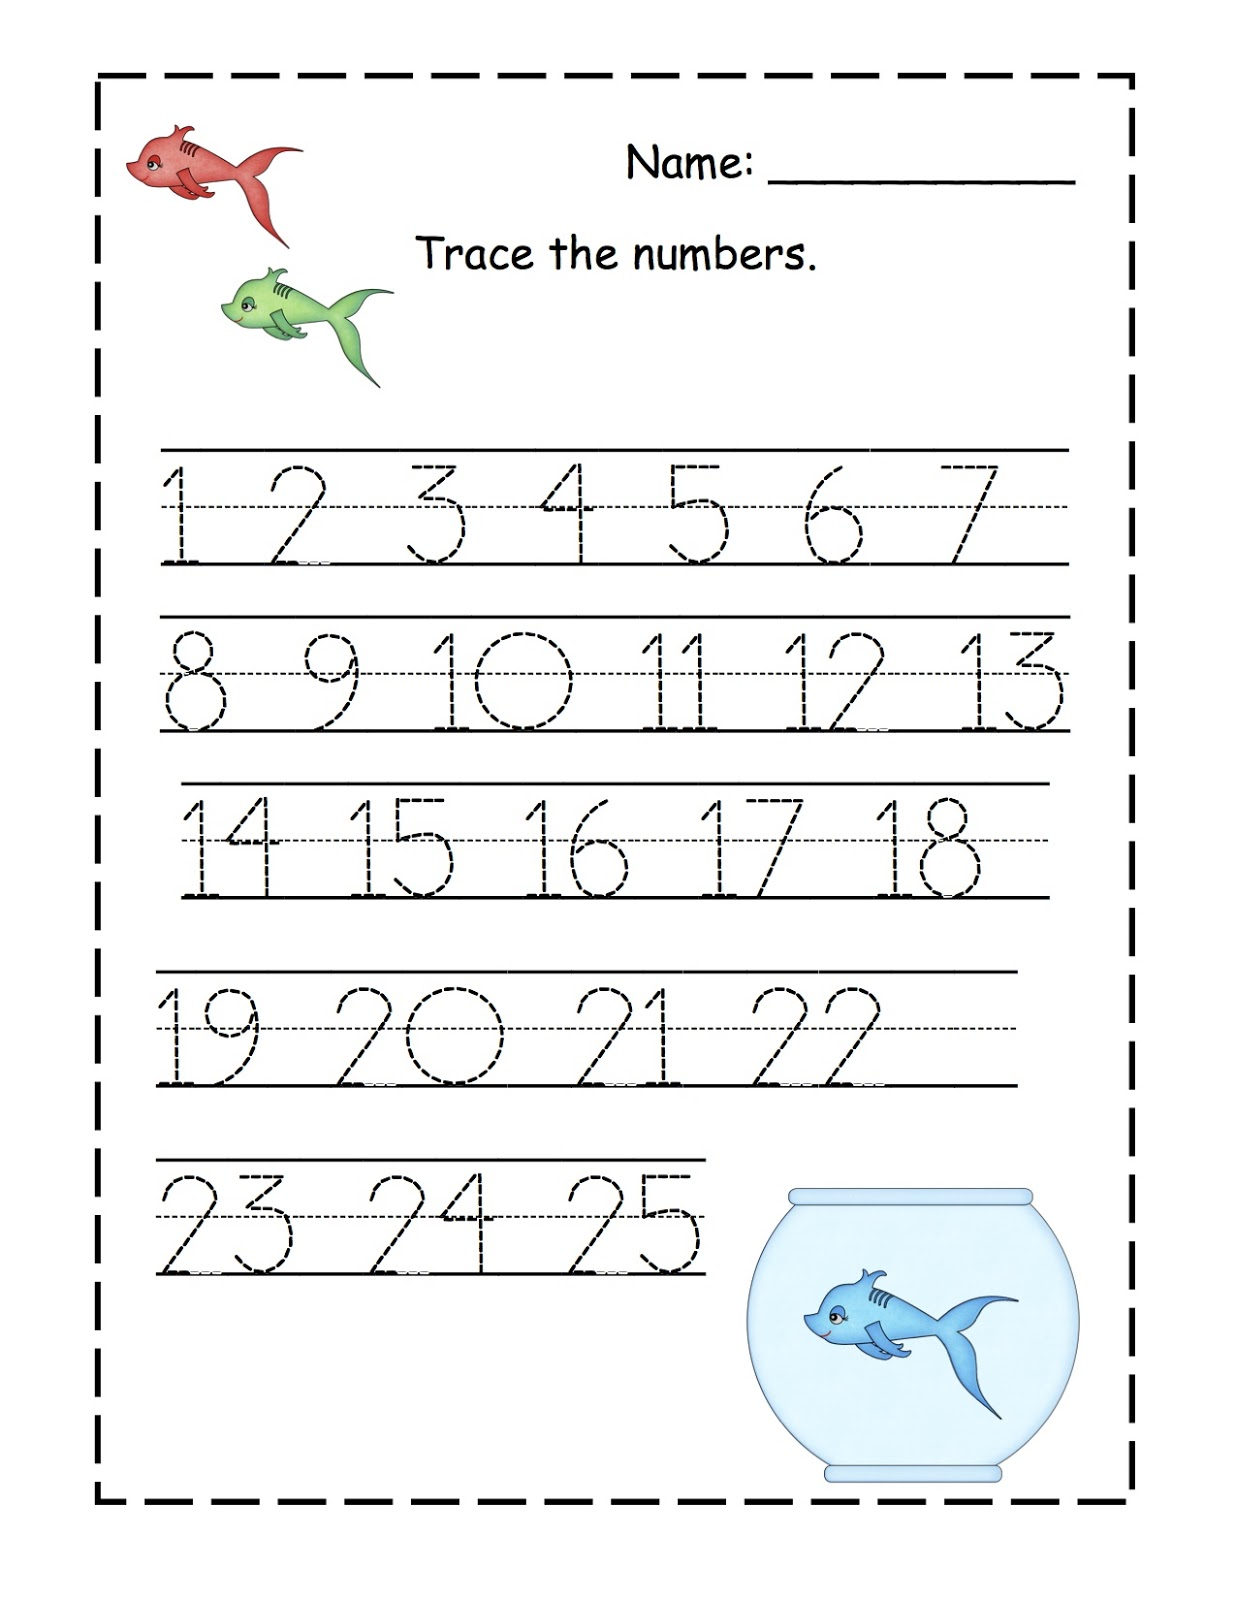 traceable numbers 1-10 2